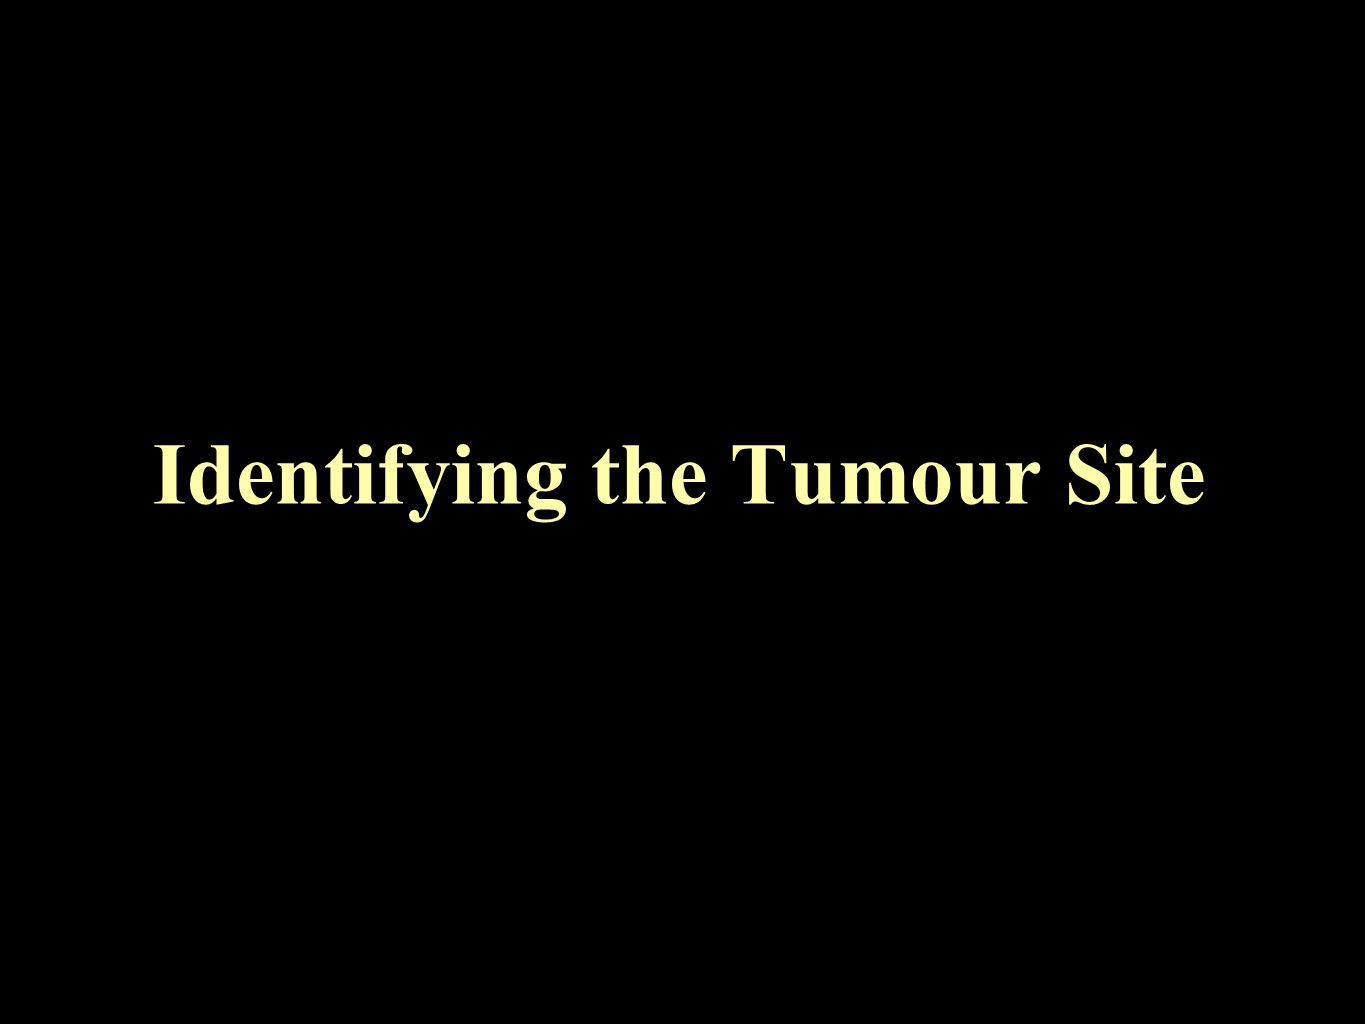 Identifying the Tumour Site